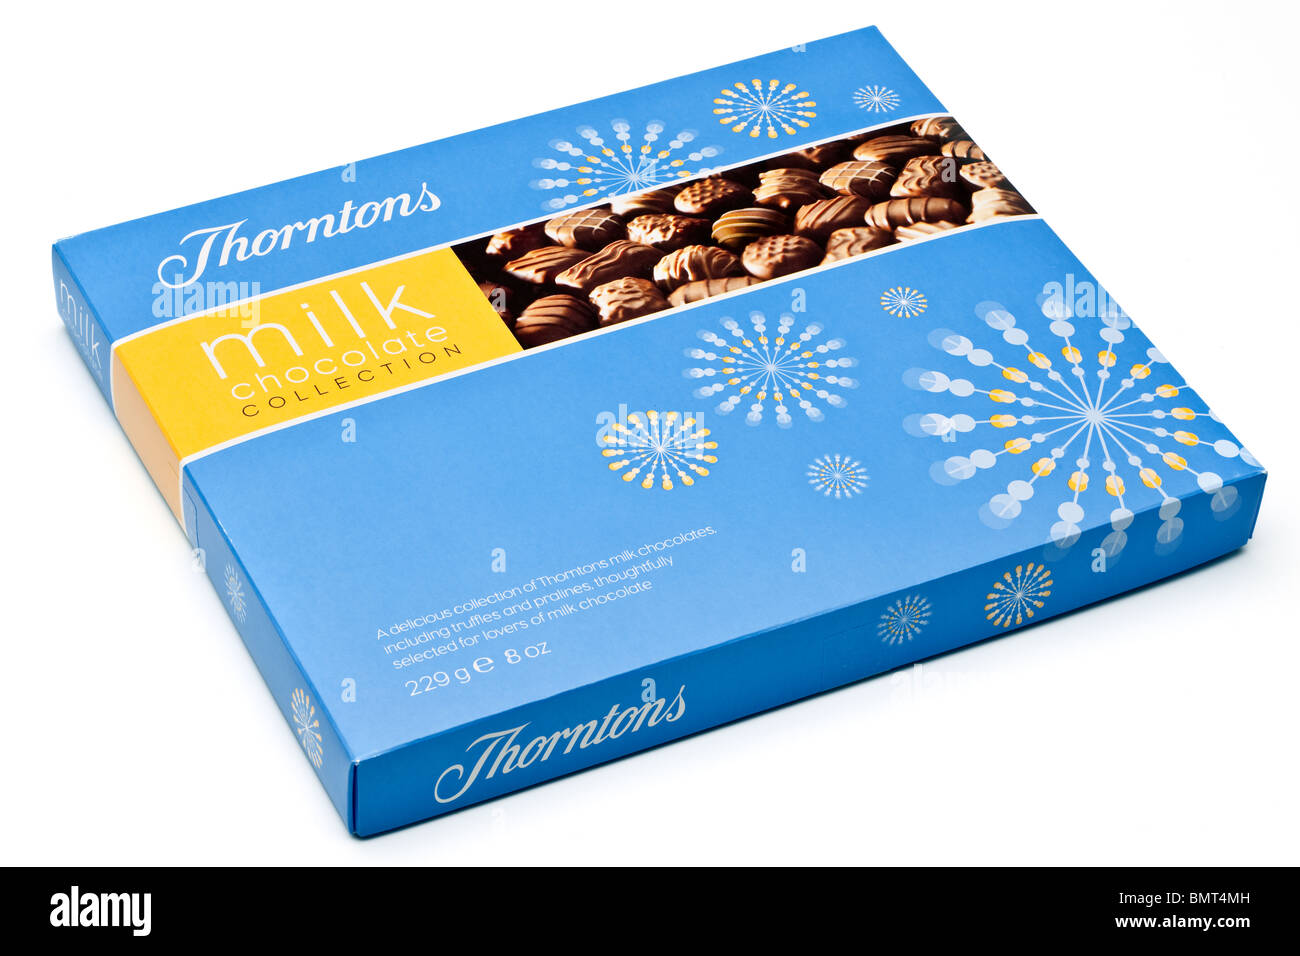 8 ounce Box of Thorntons milk chocolate collection - Stock Image